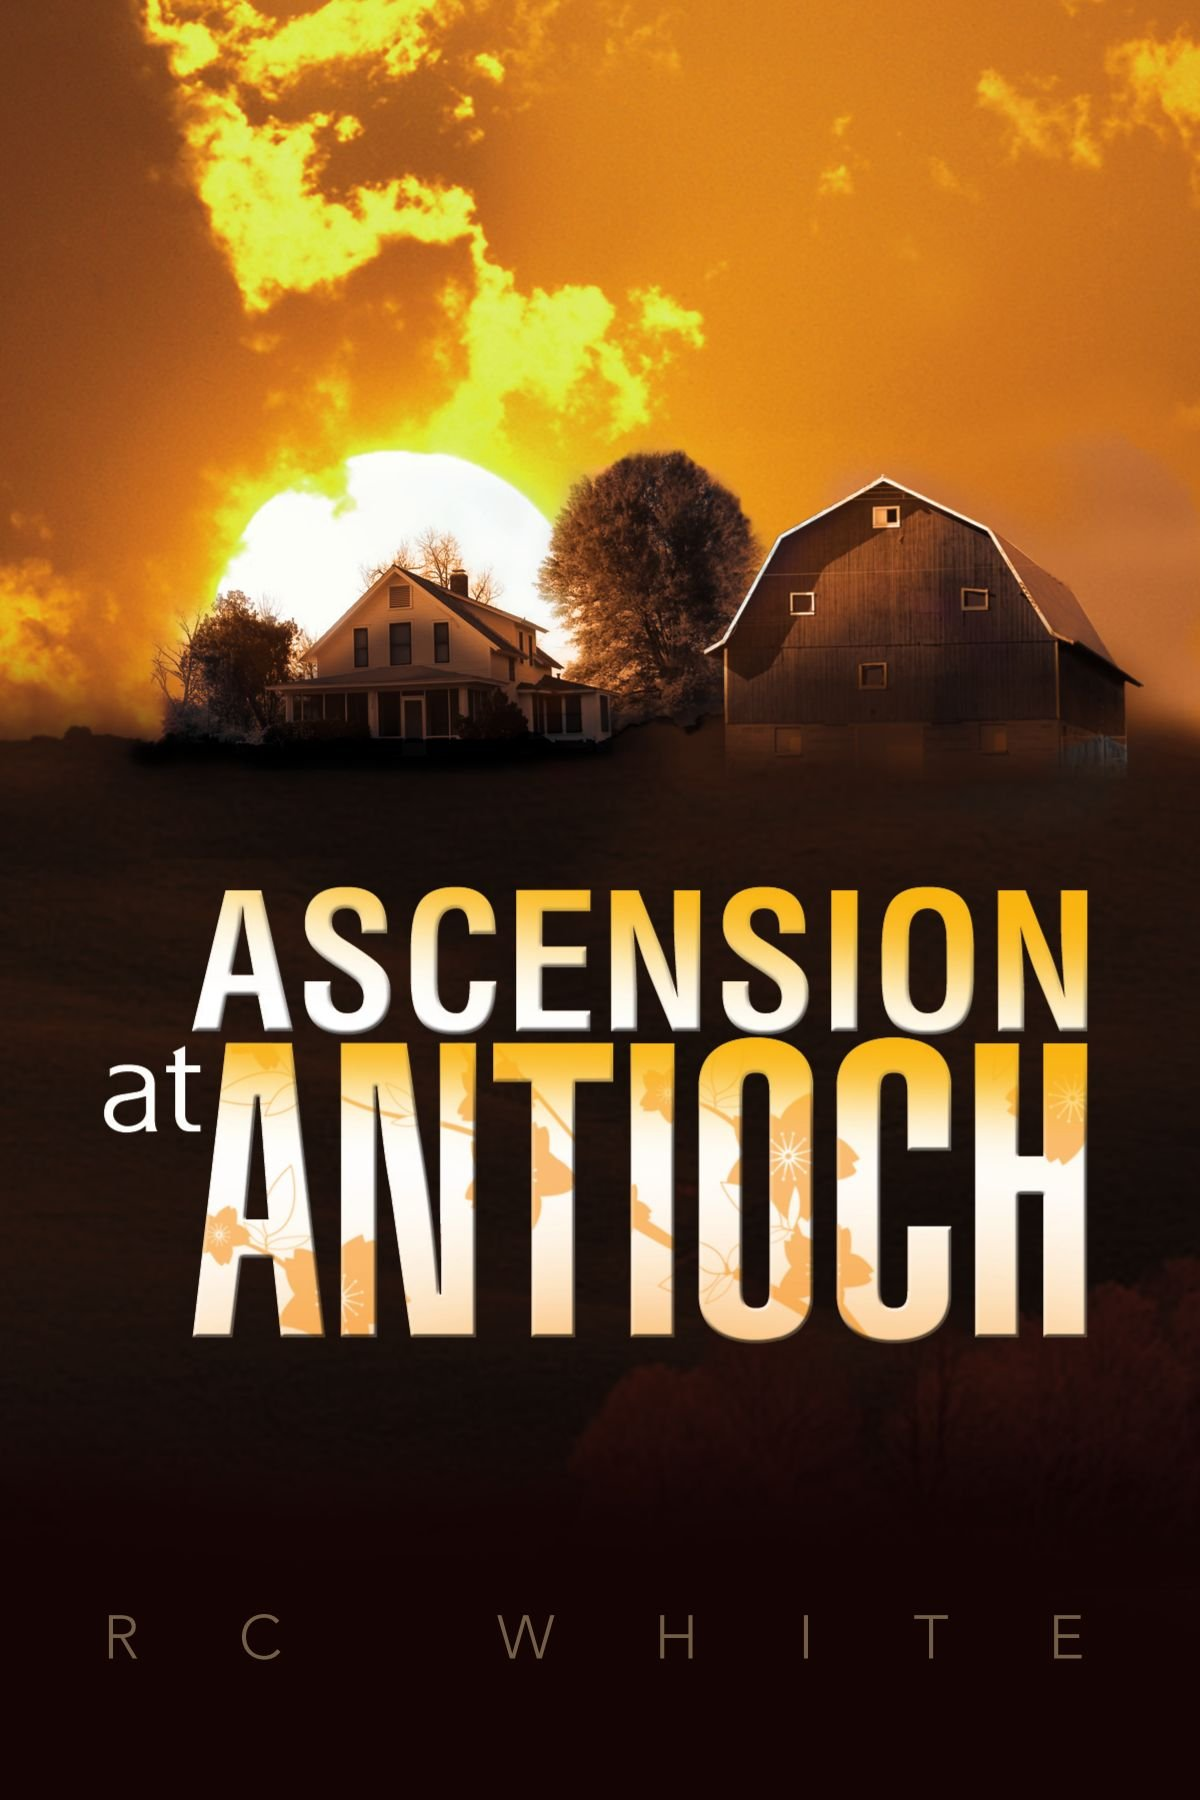 Download Ascension at Antioch ebook